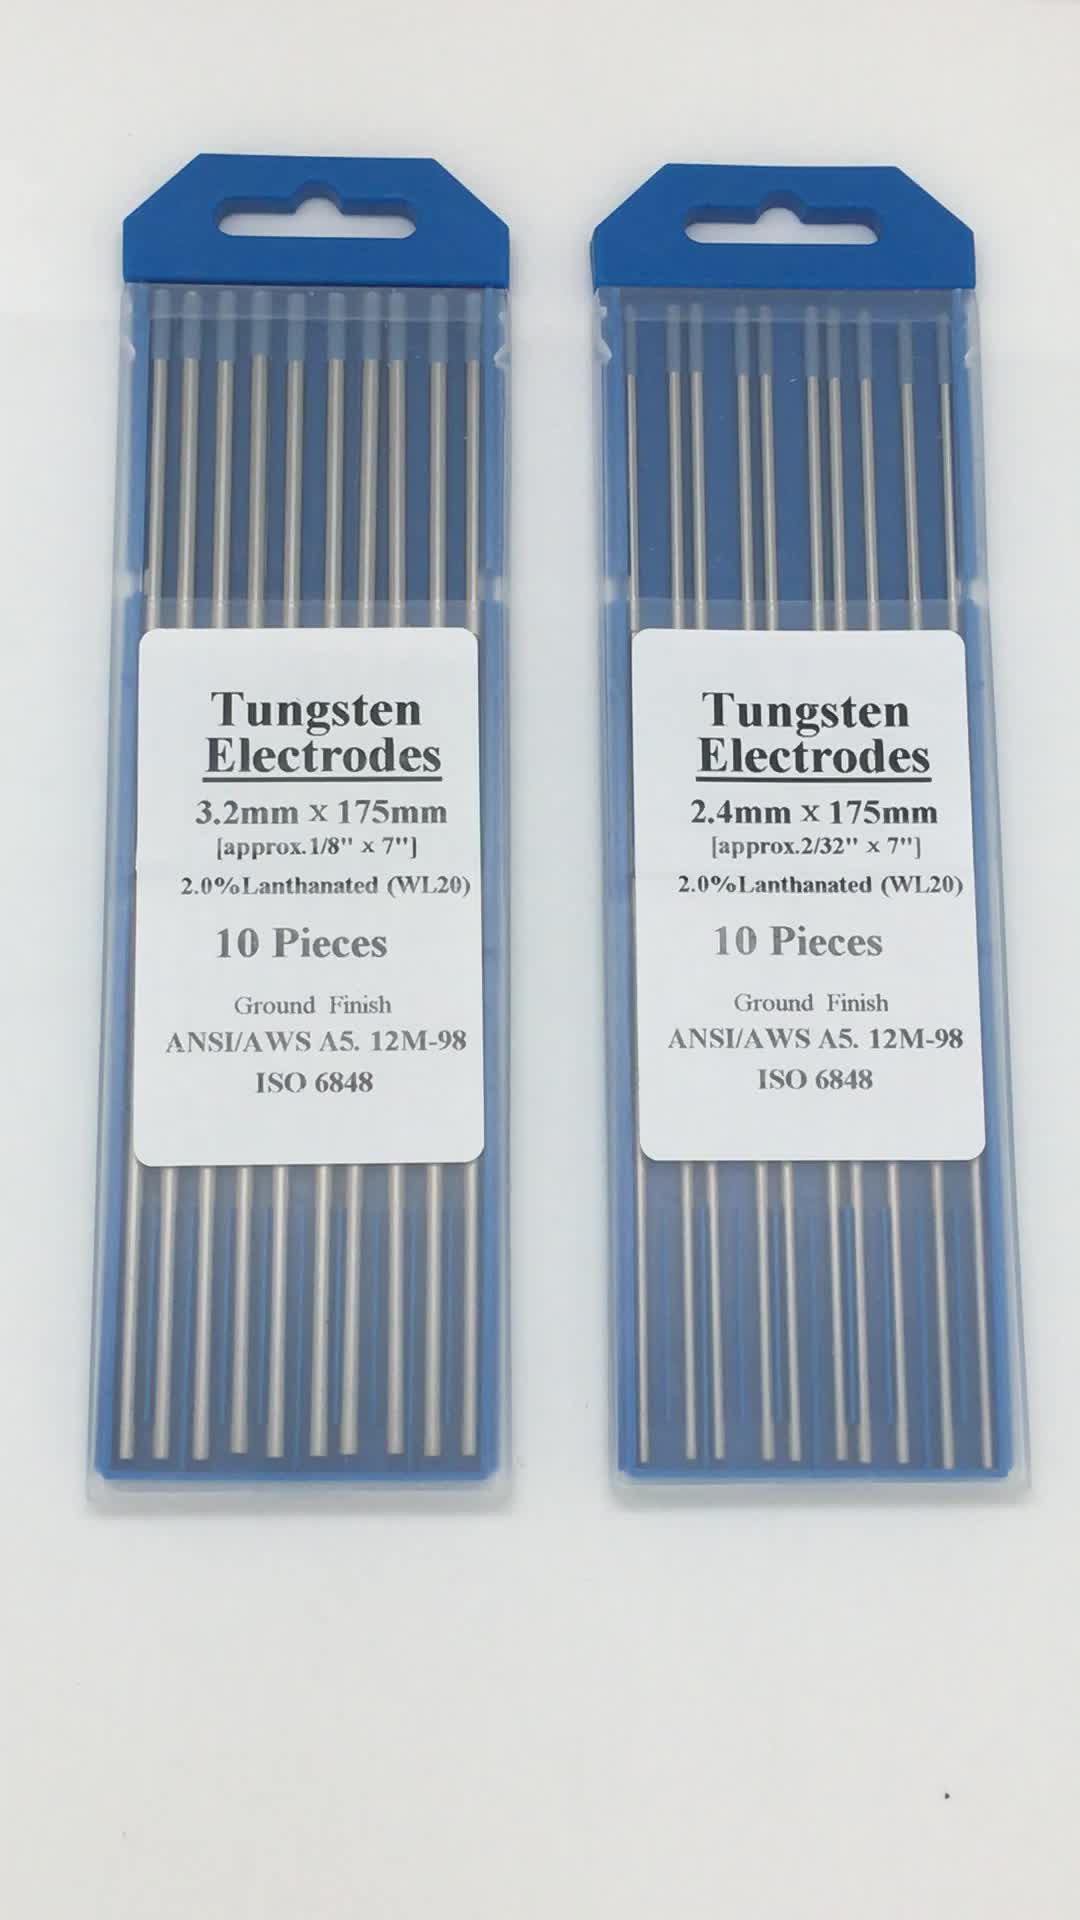 High Quality for Welding Blue WL20 2.0% Lanthanated Tungsten Electrode